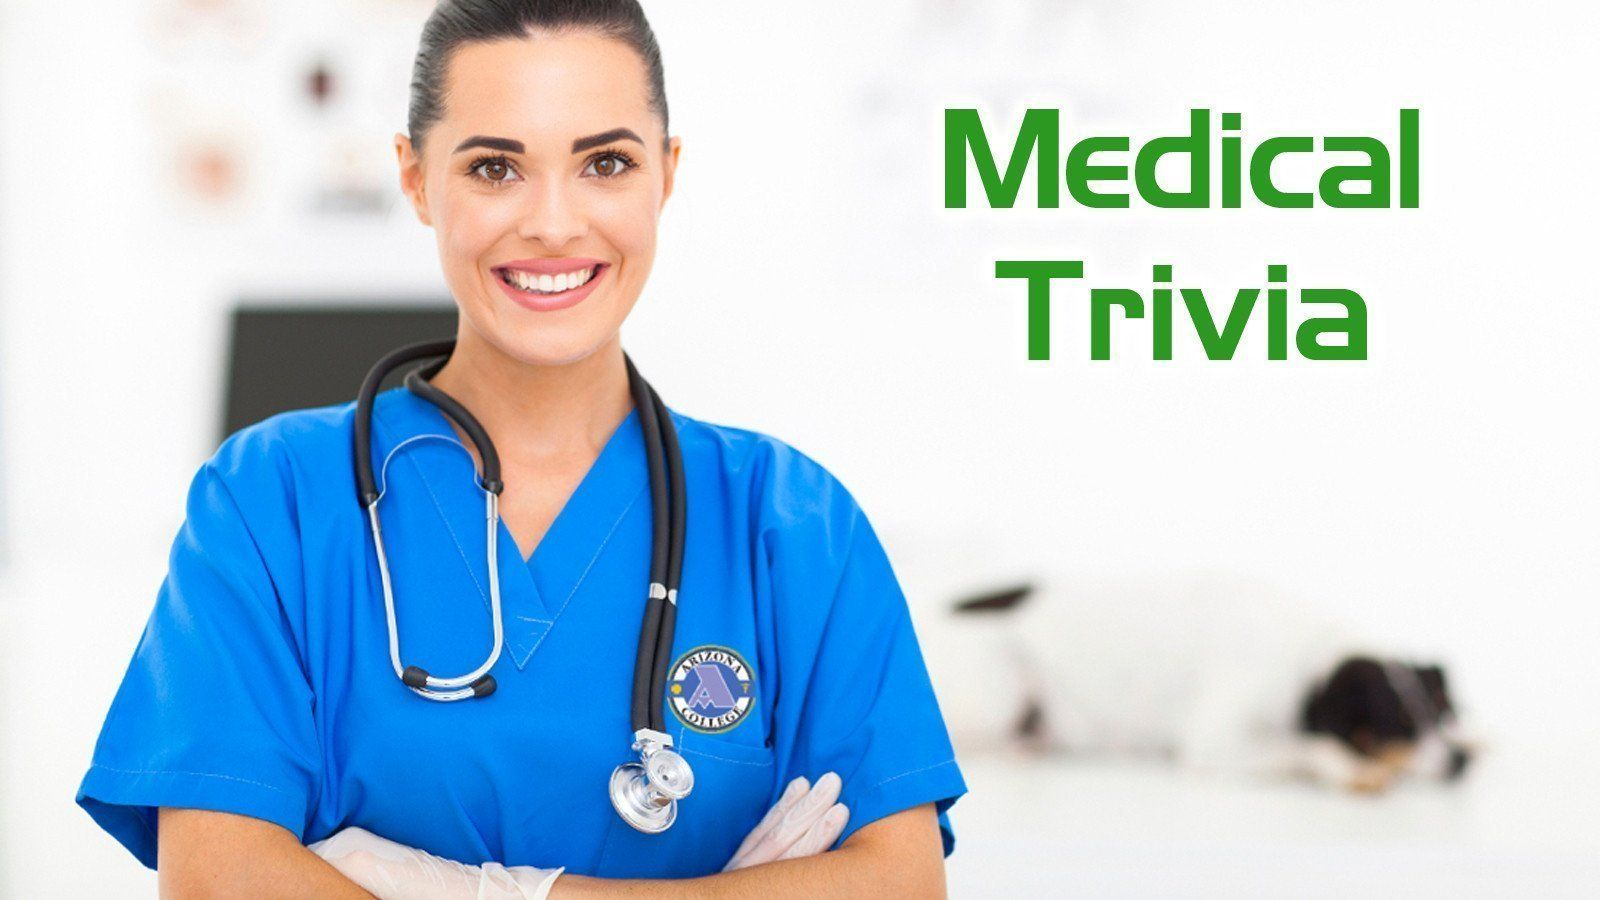 Free Trivia Night Questions - All Things Medical